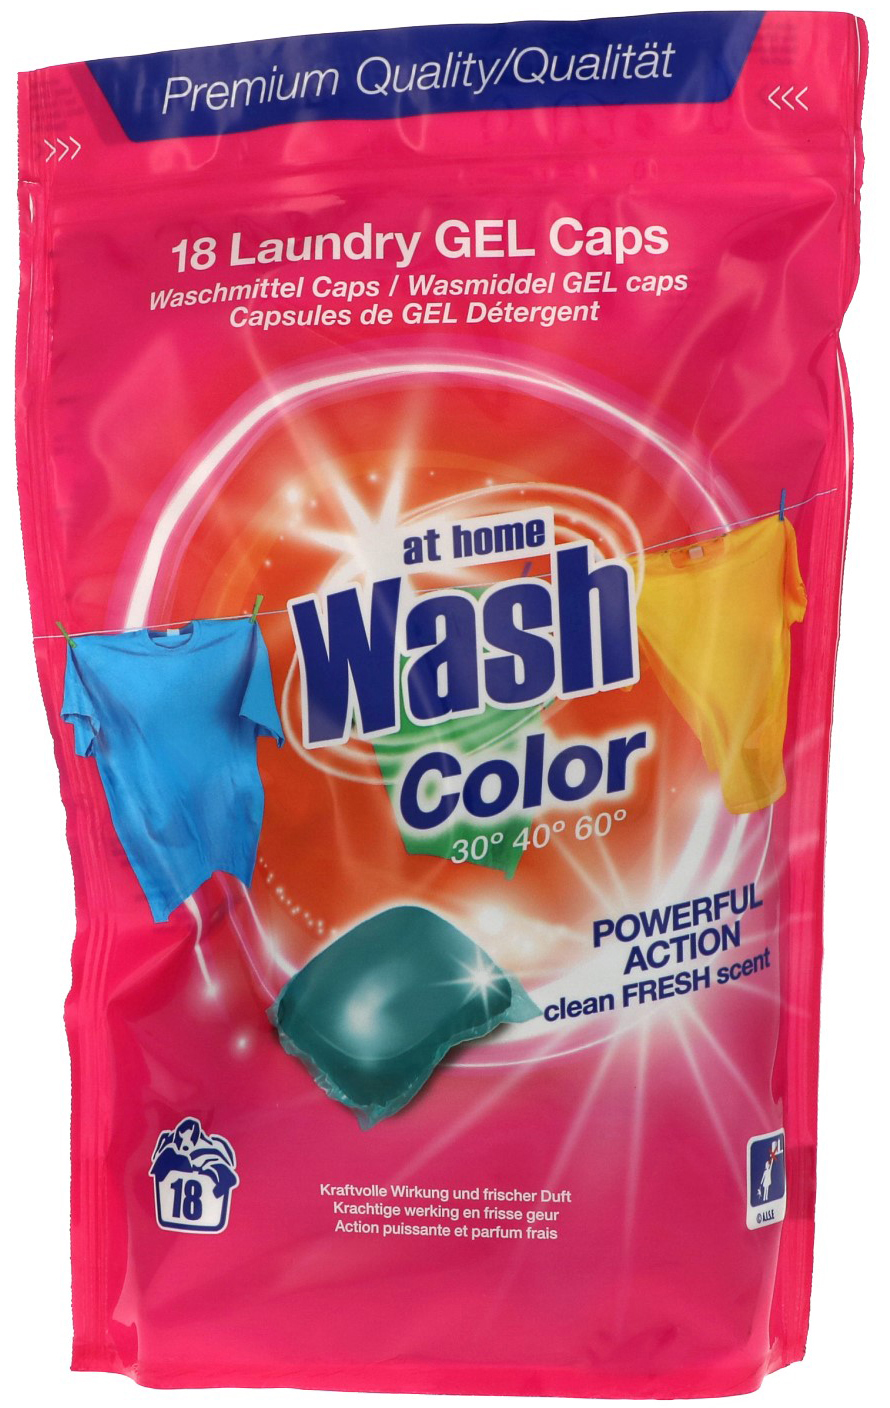 04050 - Laundry gel-caps 18 pieces - color